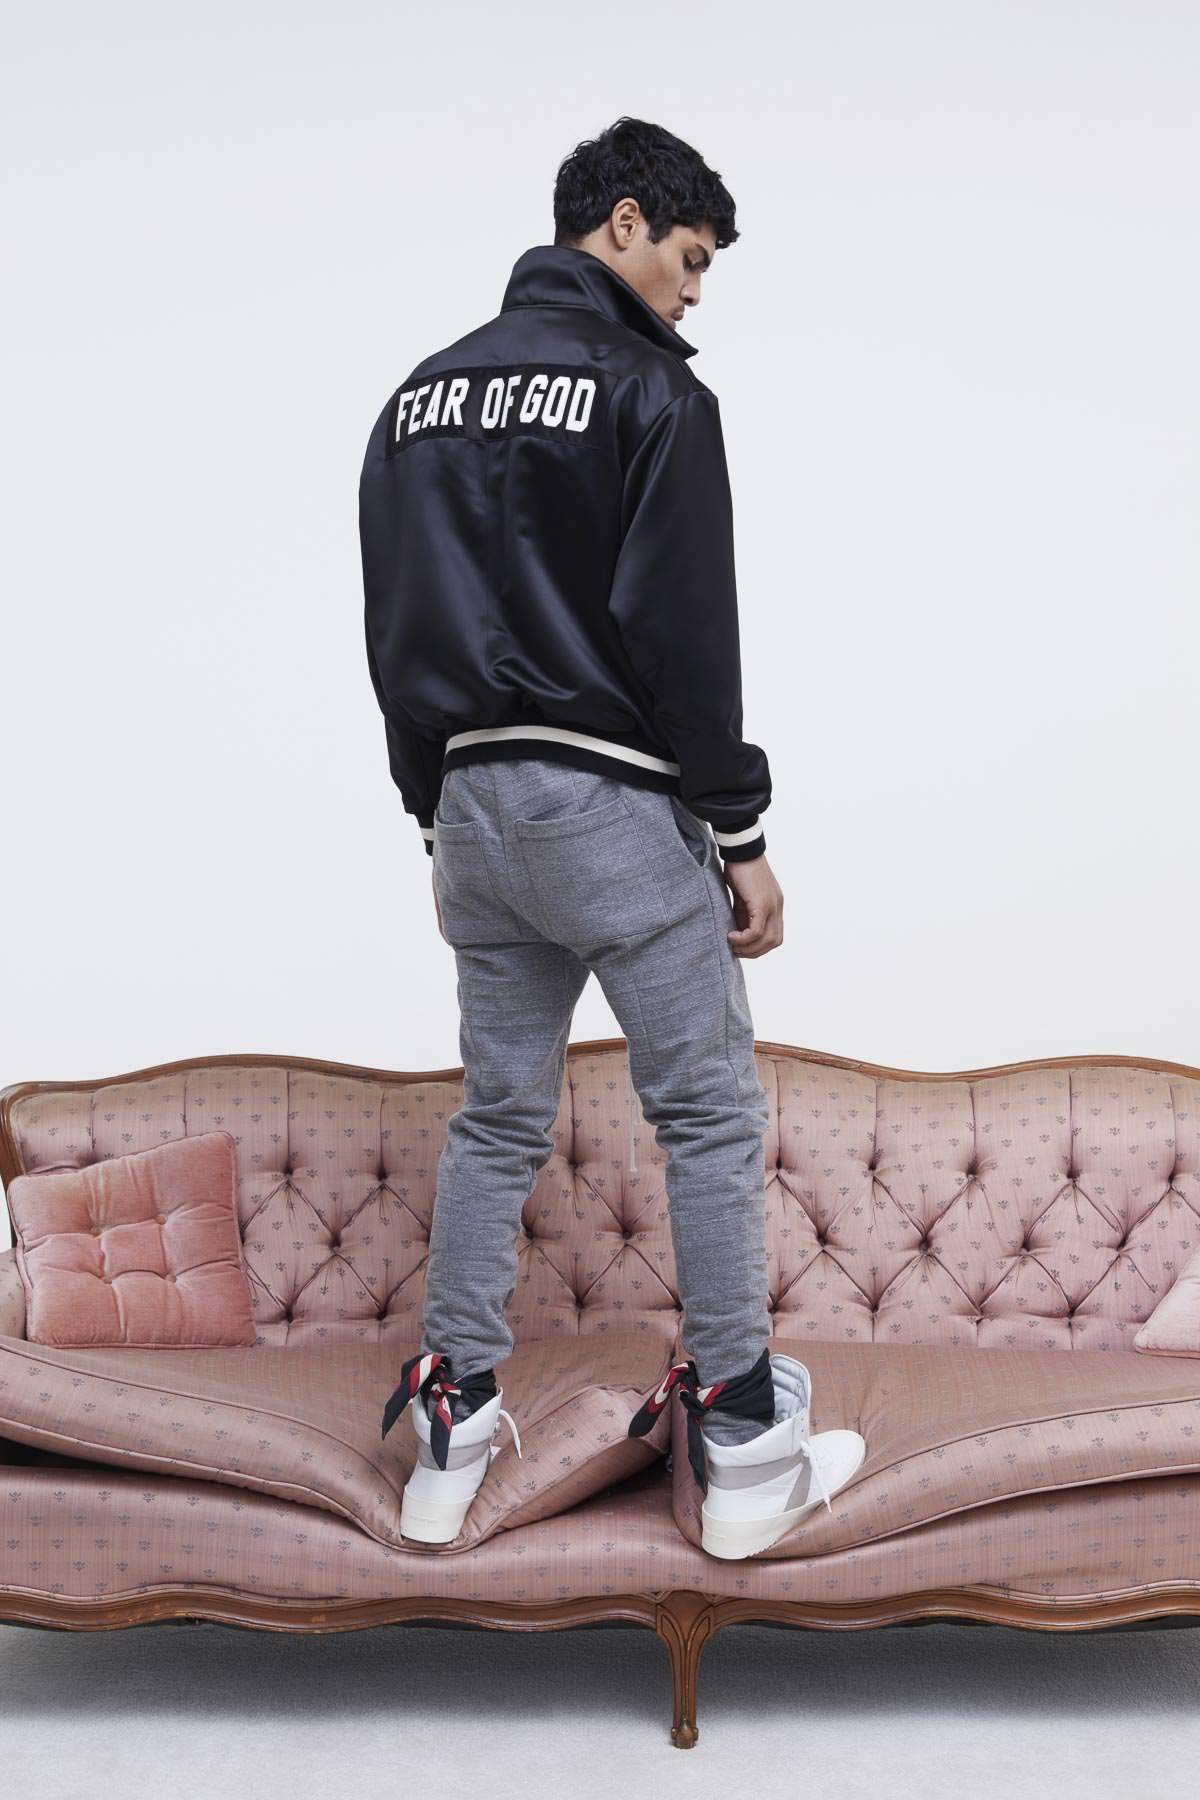 Fear of God - Fifth collection (14)